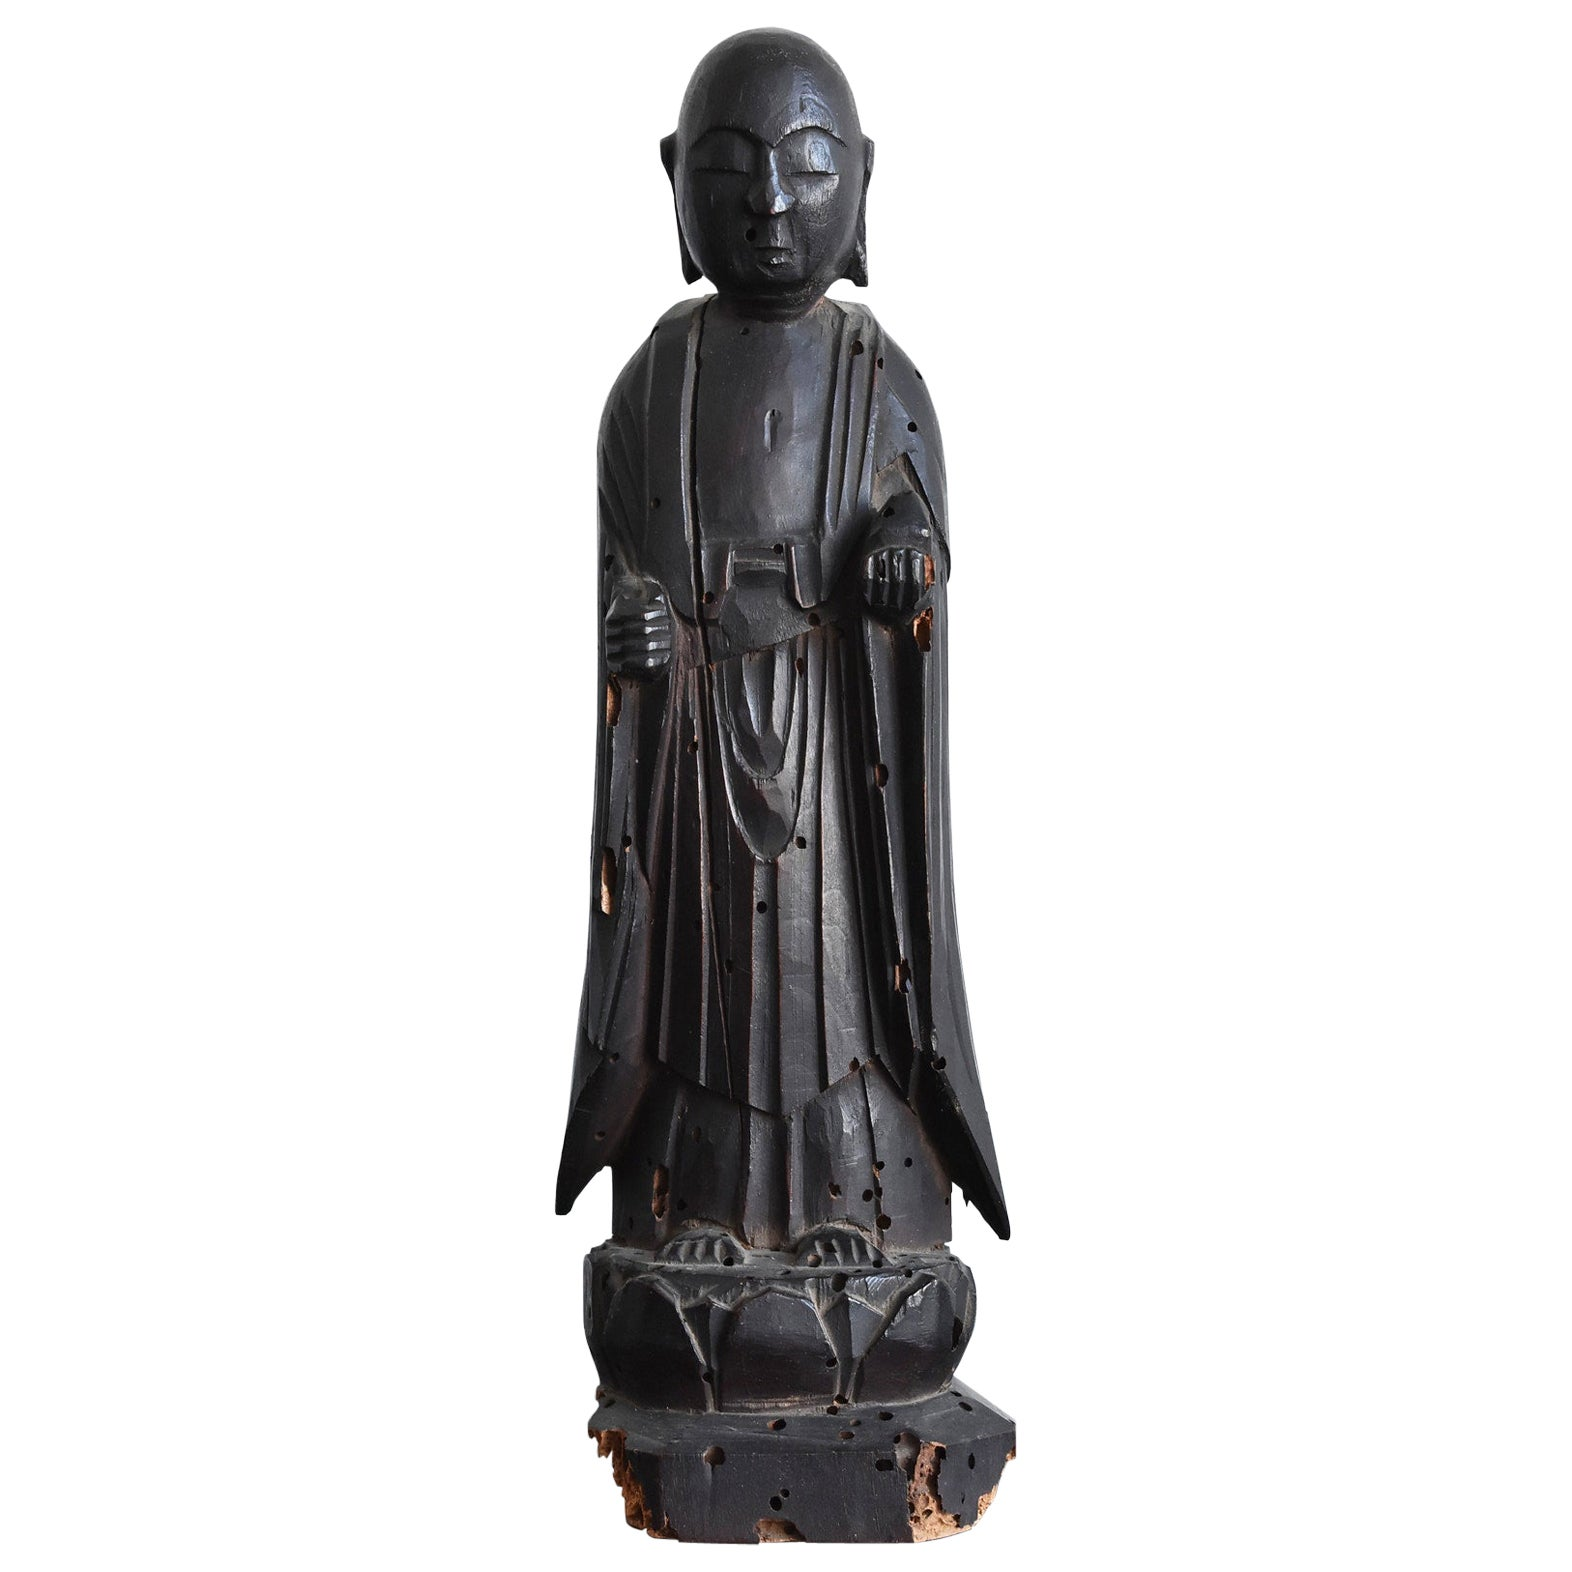 Wooden Buddha Statue from the Edo Period / Japanese Antique Figurine